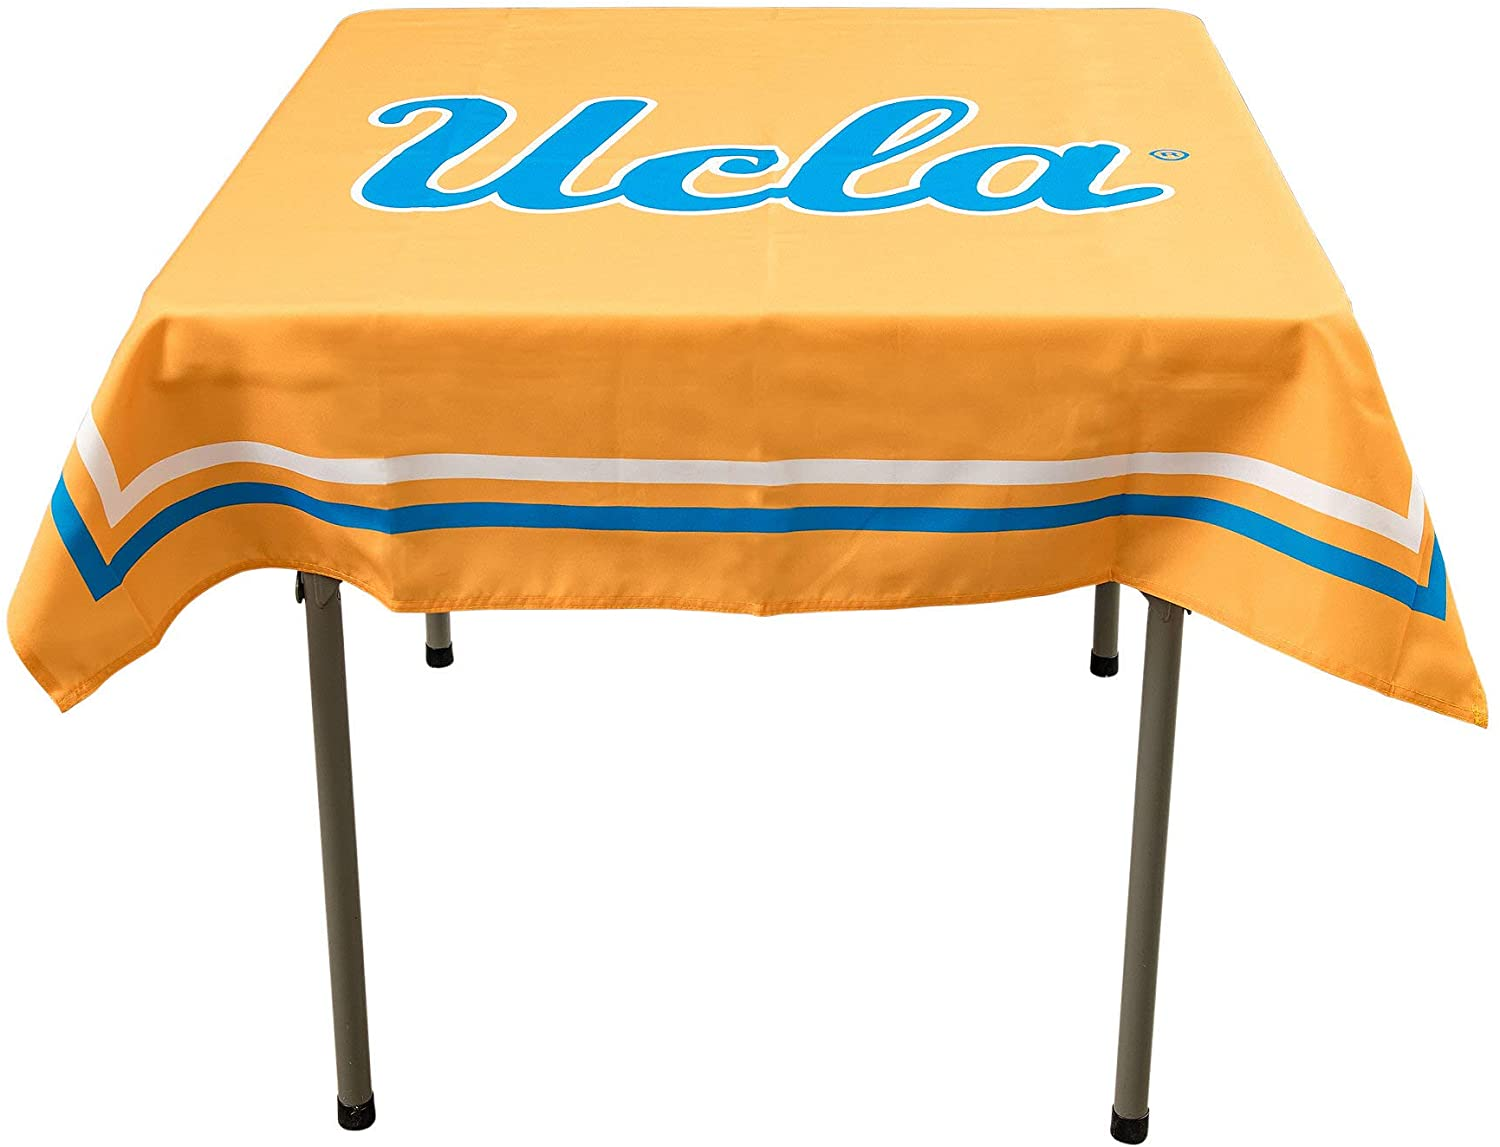 College Flags & Banners Co. UCLA Bruins Logo Tablecloth or Table Overlay